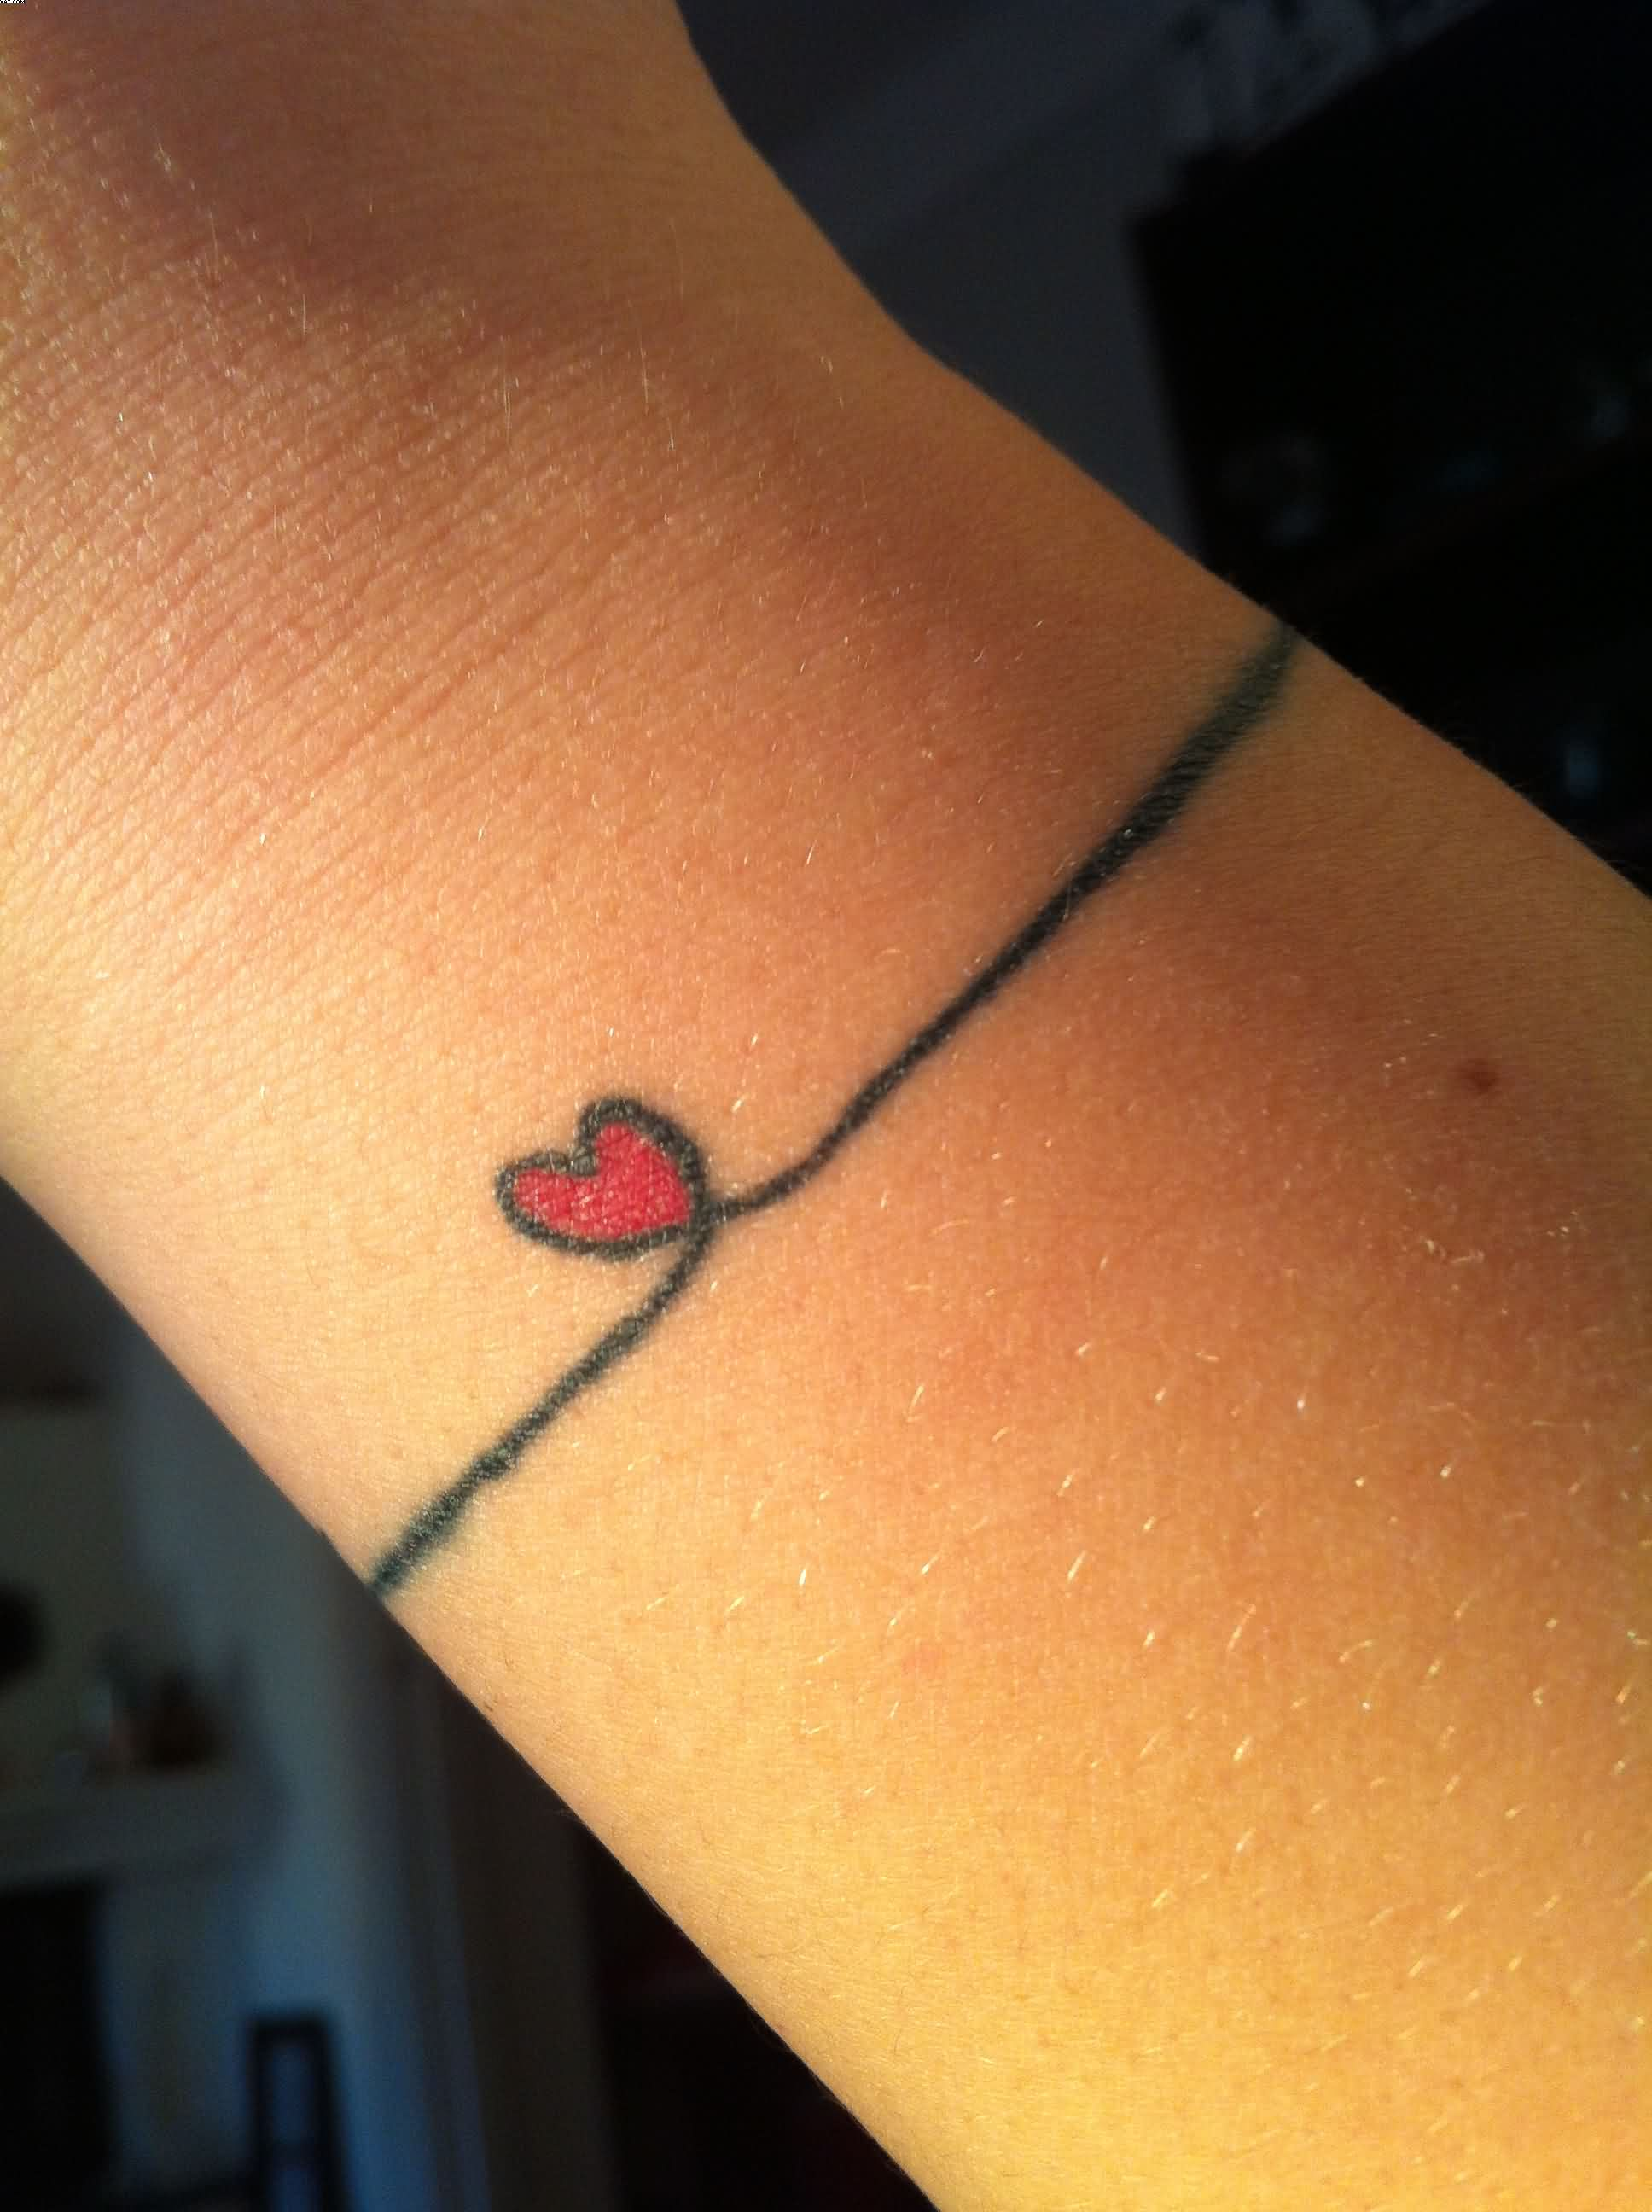 Tiny Love Heart Wrist Band Tattoo